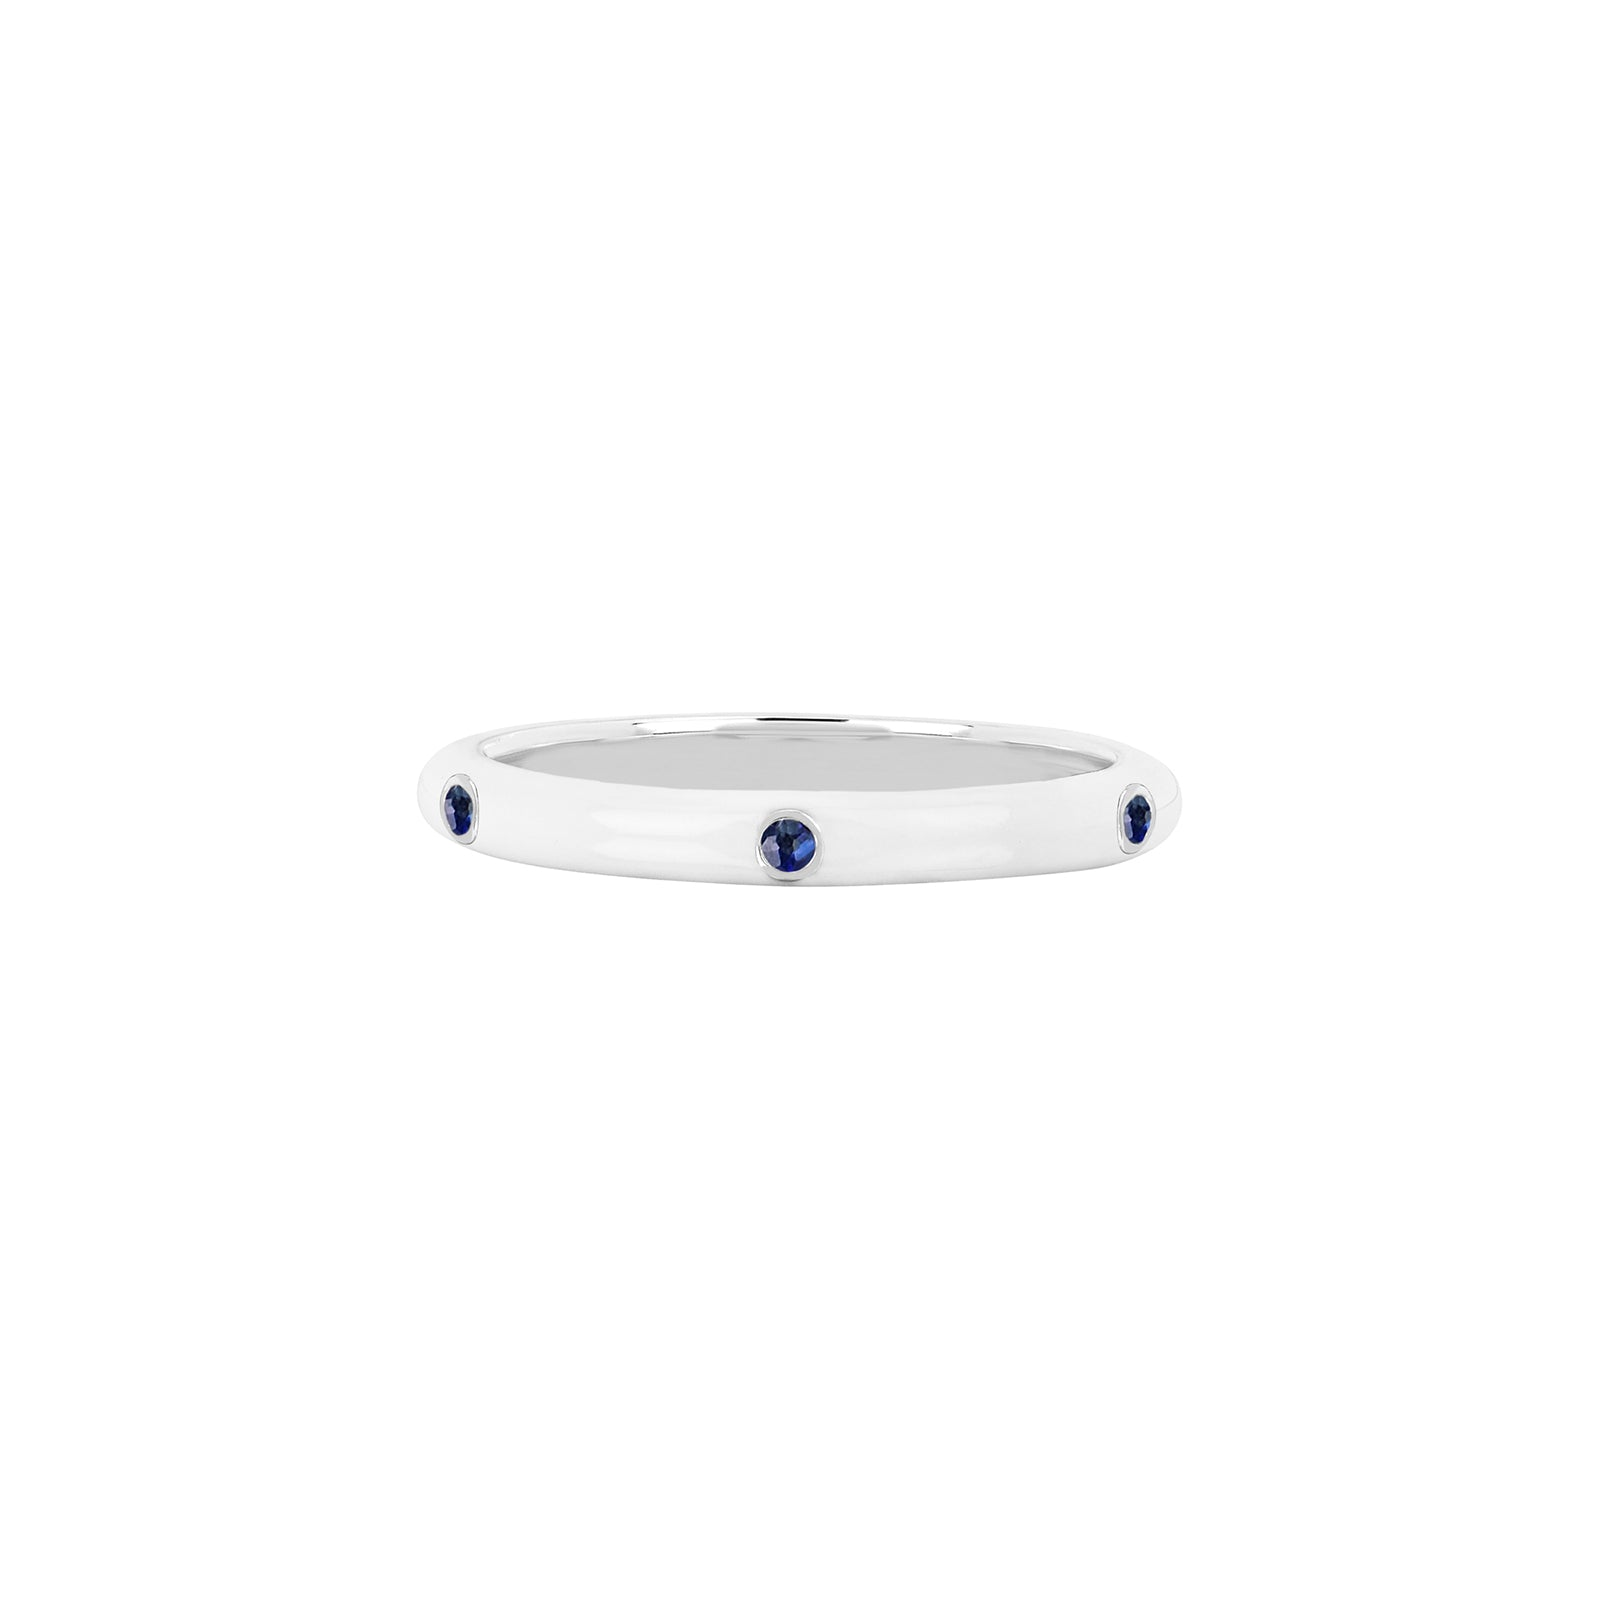 EF Collection Blue Sapphire White Enamel Ring - White Gold - Rings - Broken English Jewelry